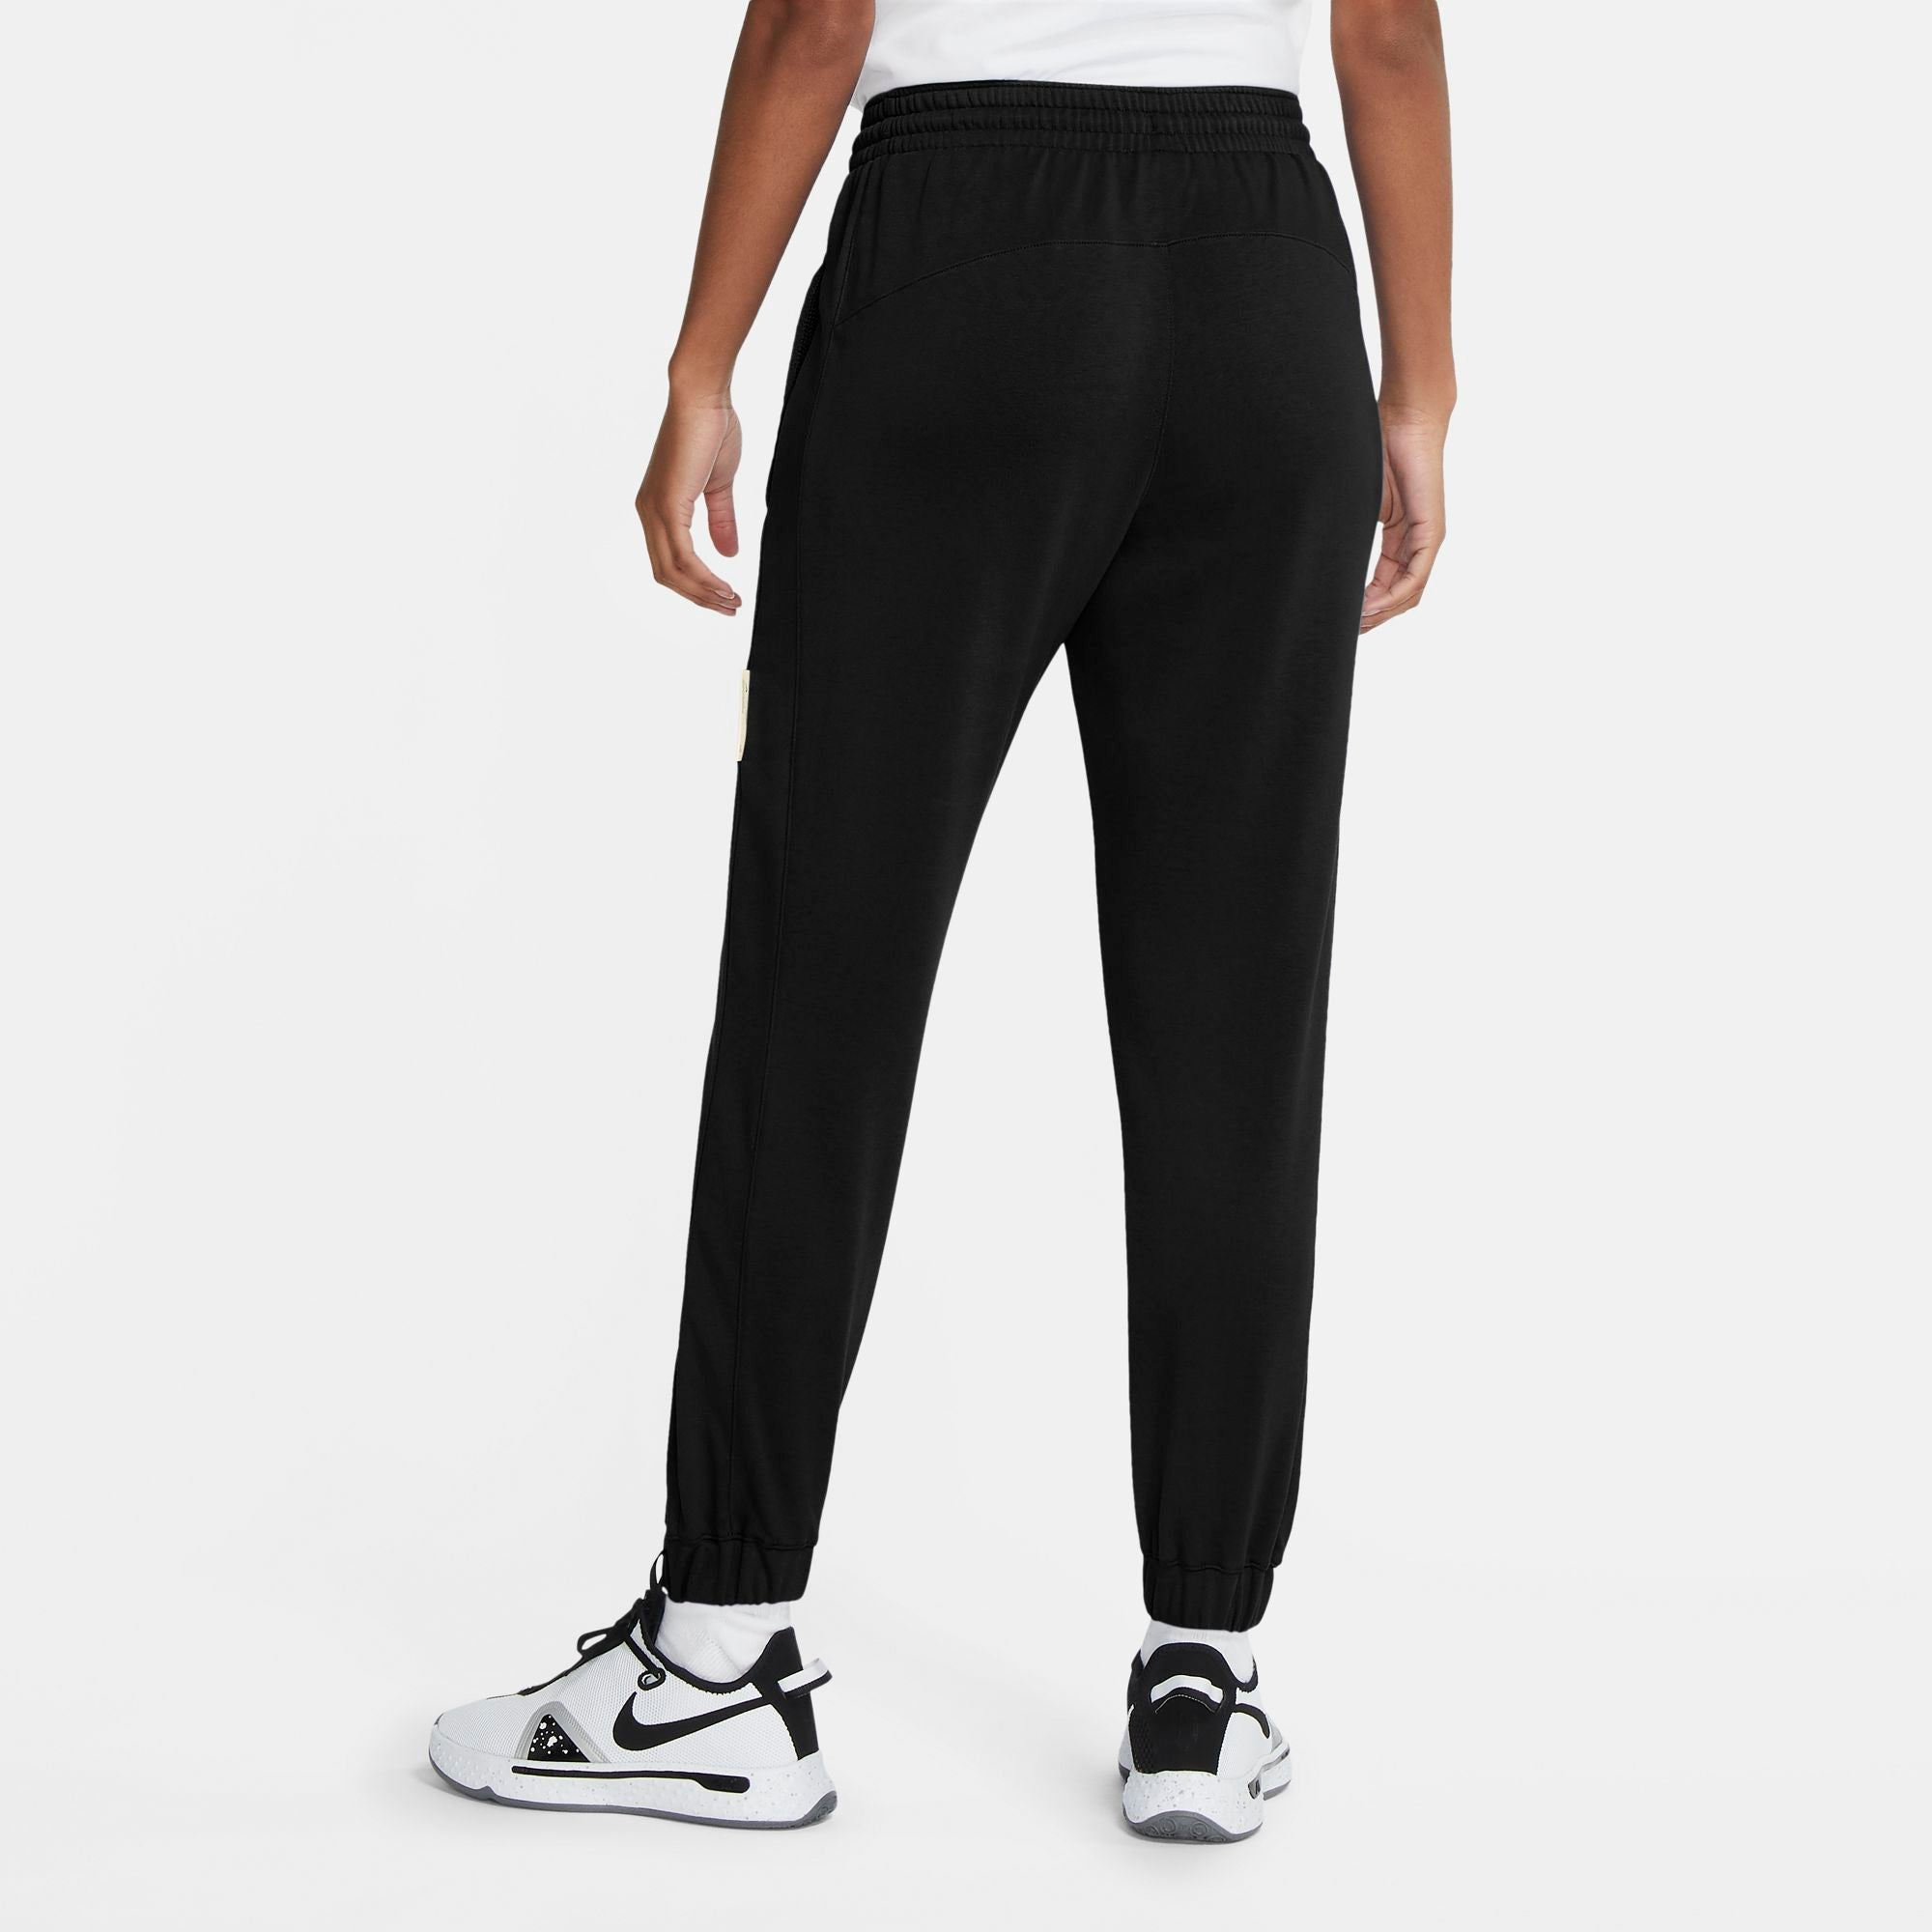 Nike Womens Basketball Standard Issue Pants - Black/Pale Ivory NK-CU3482-010